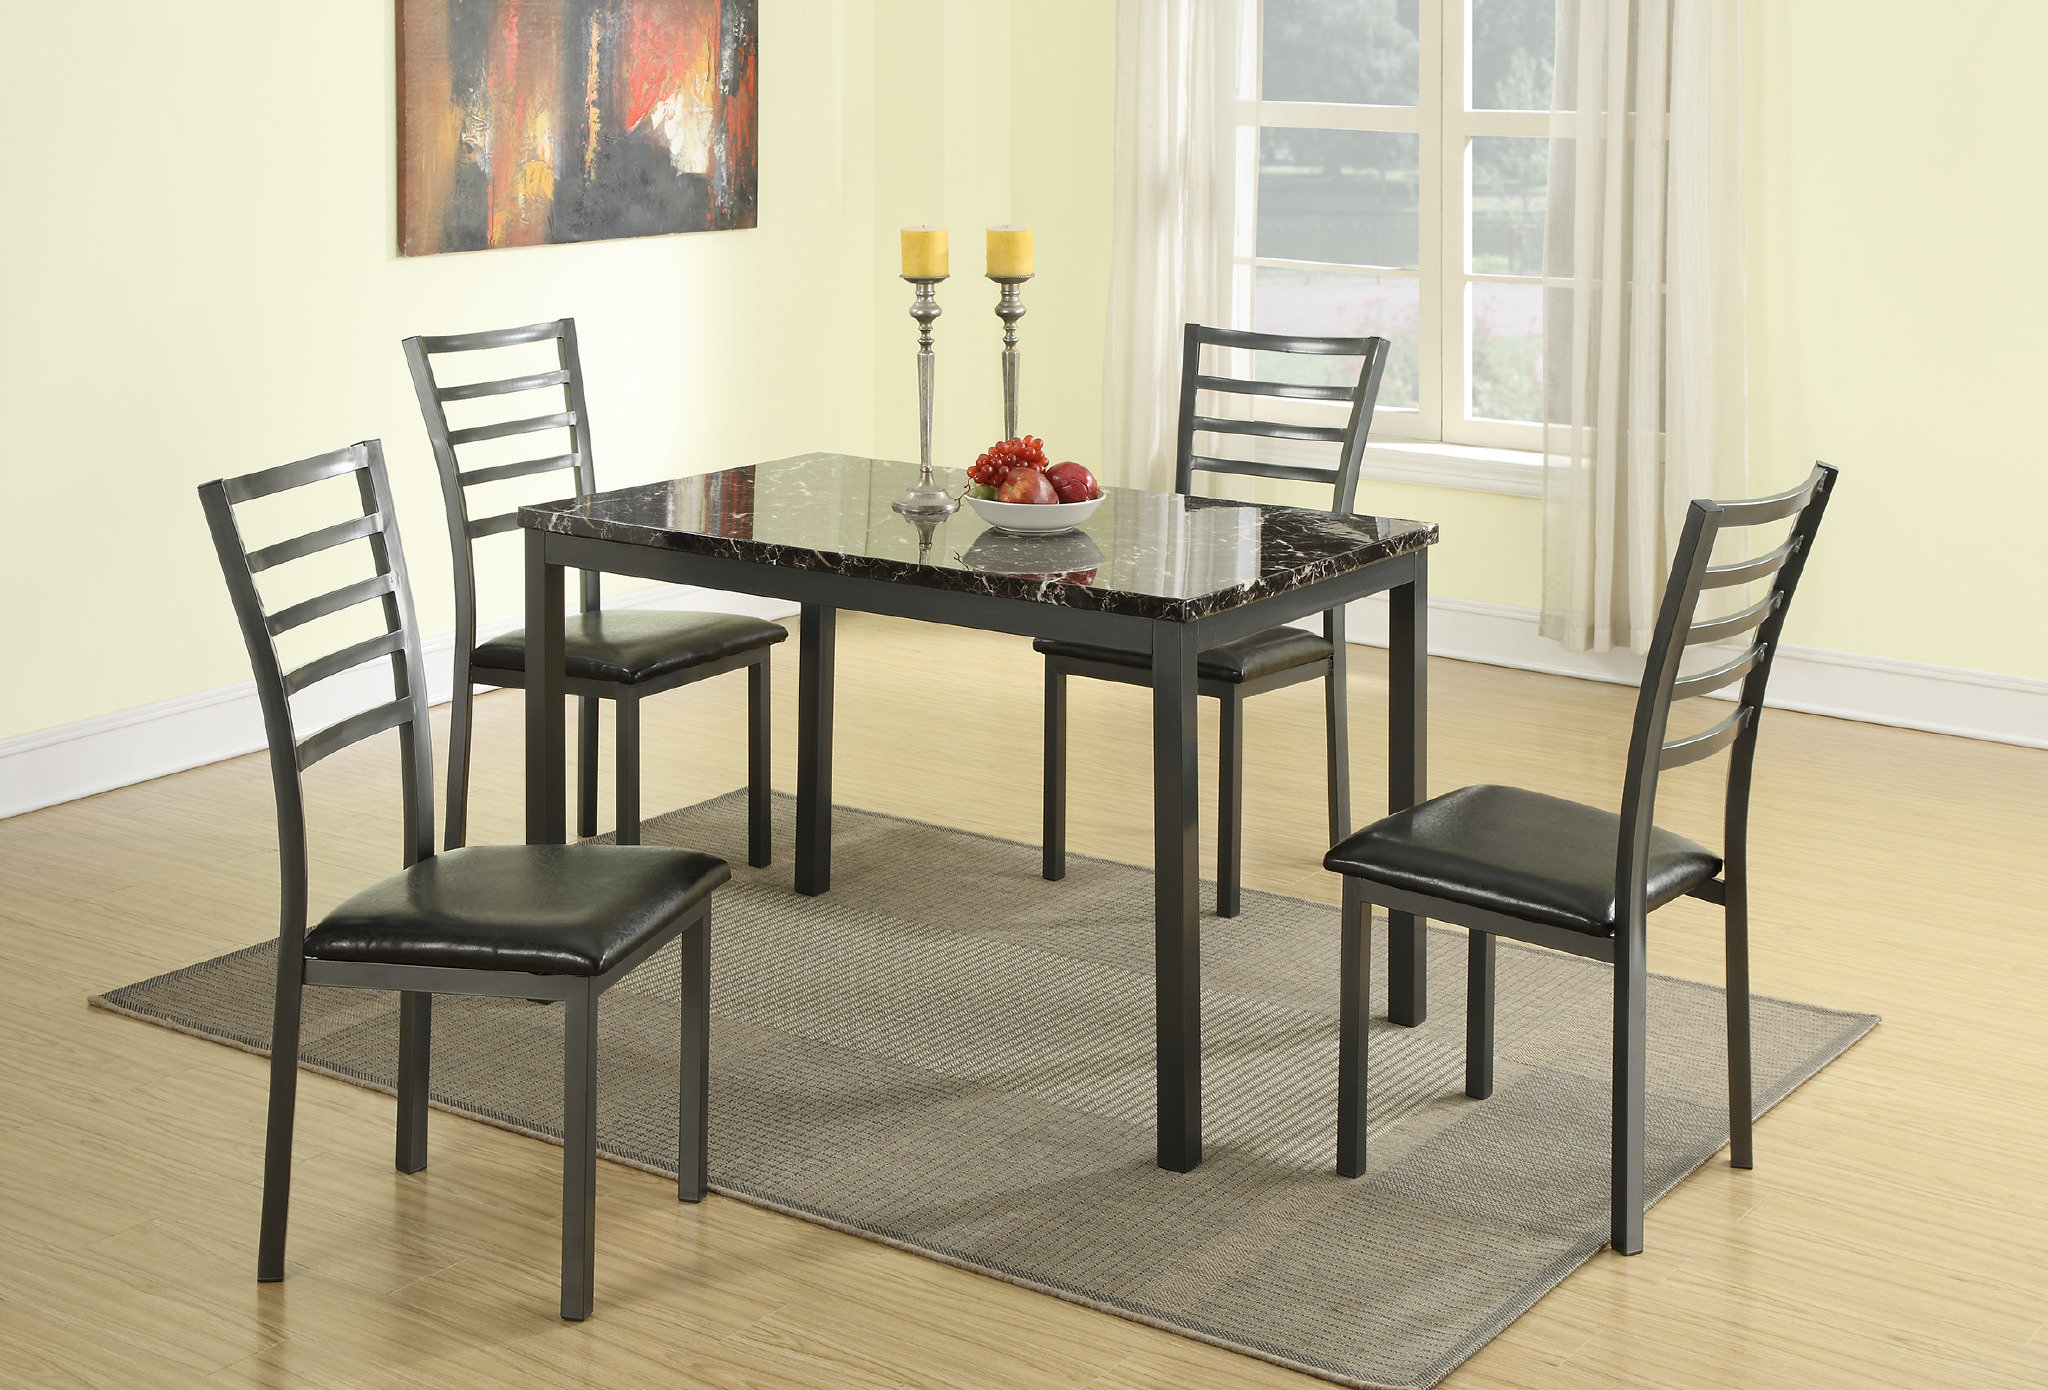 Caenas 5 Piece Dining Set For Most Up To Date Taulbee 5 Piece Dining Sets (View 11 of 20)